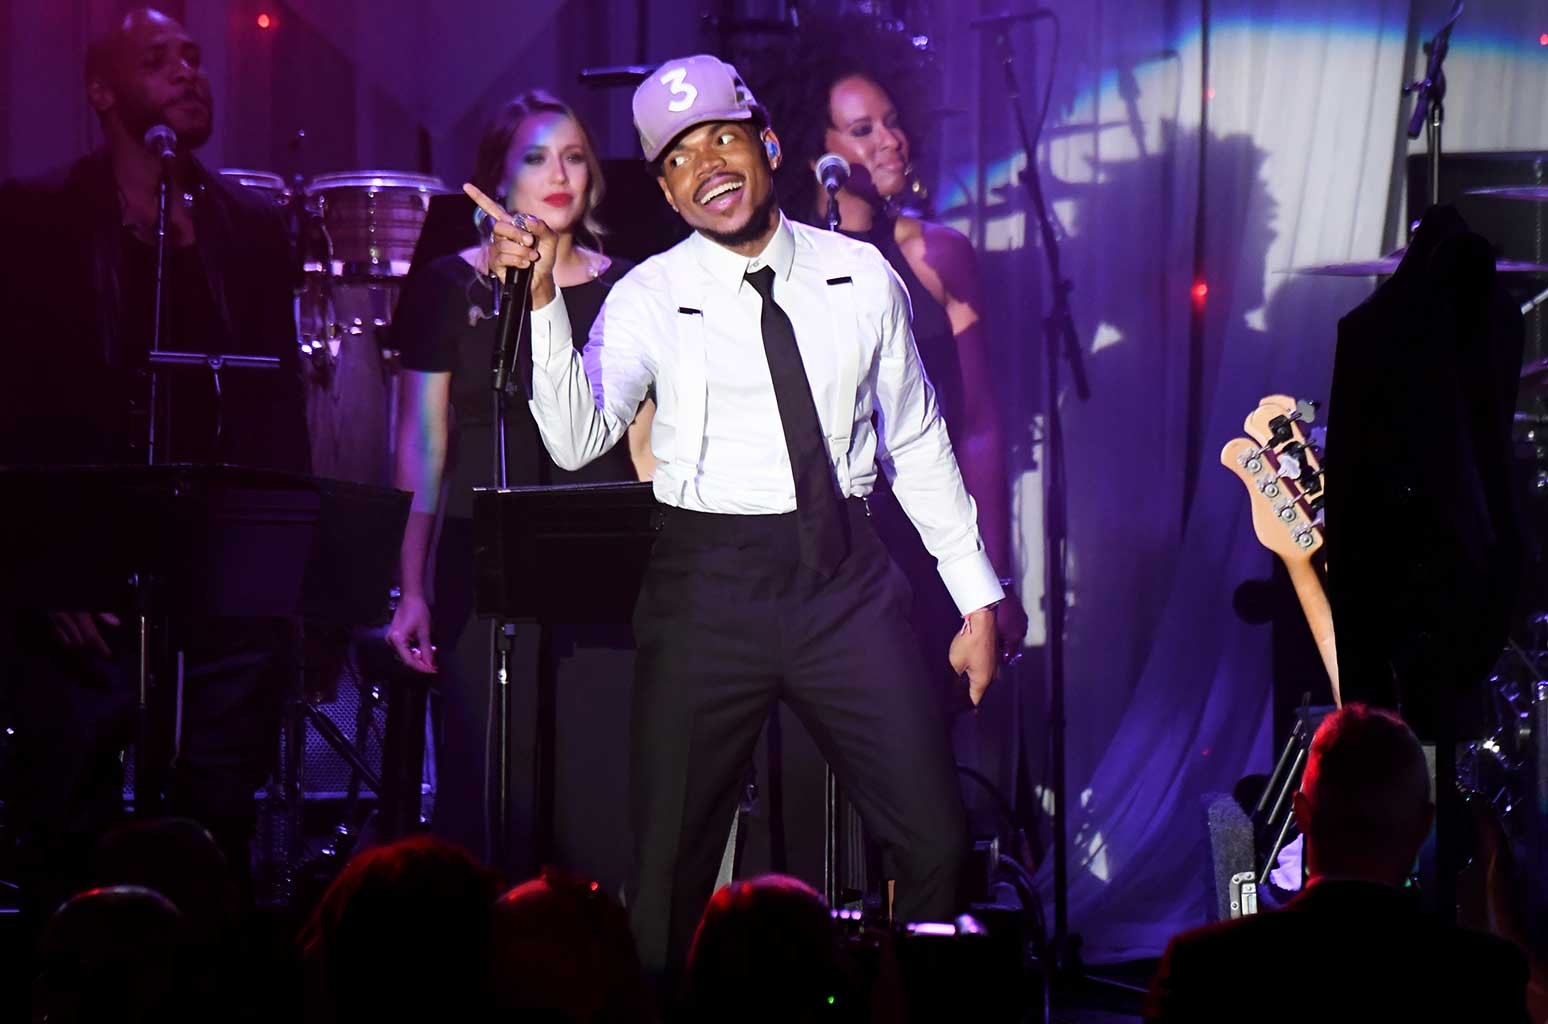 Chance the Rapper performs onstage during the 2017 Pre-Grammy Gala And Salute to Industry Icons Honoring Debra Lee at The Beverly Hilton Hotel on Feb. 11, 2017 in Beverly Hills, Calif.